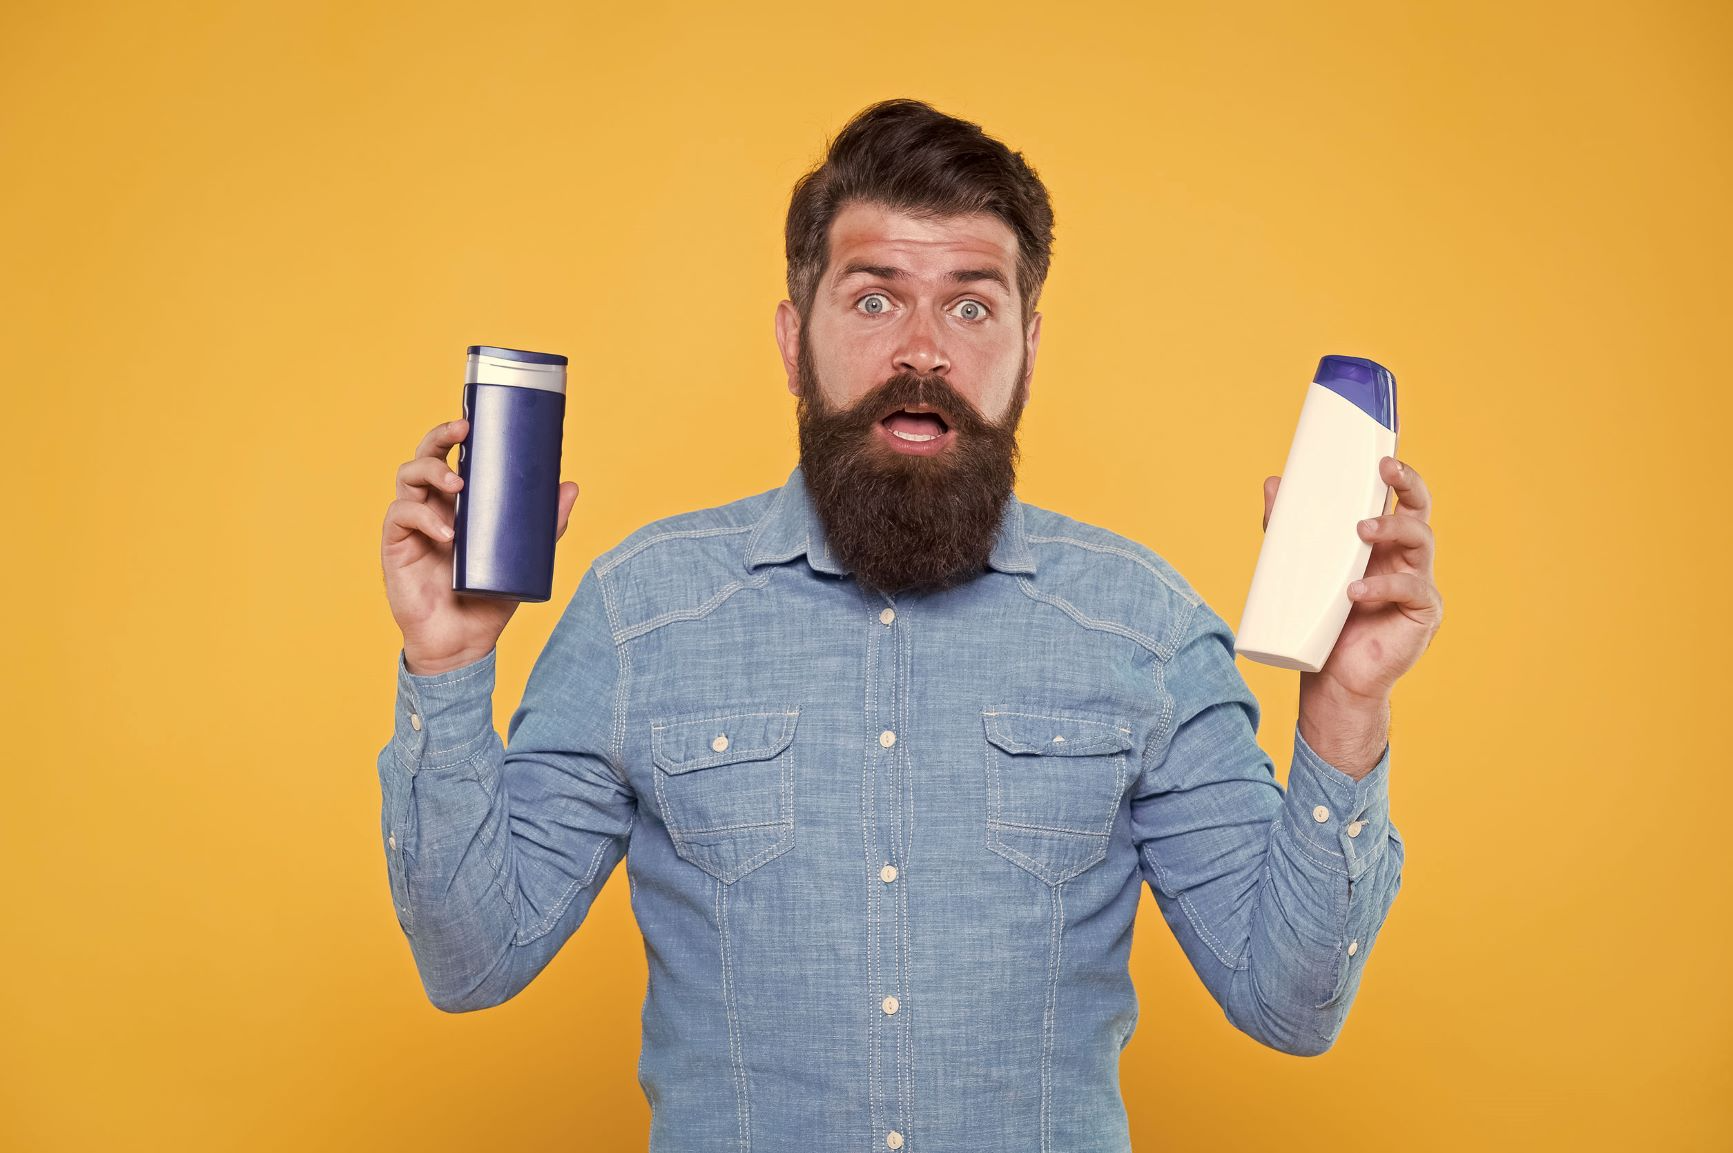 Bearded man holding hair care products in his hands